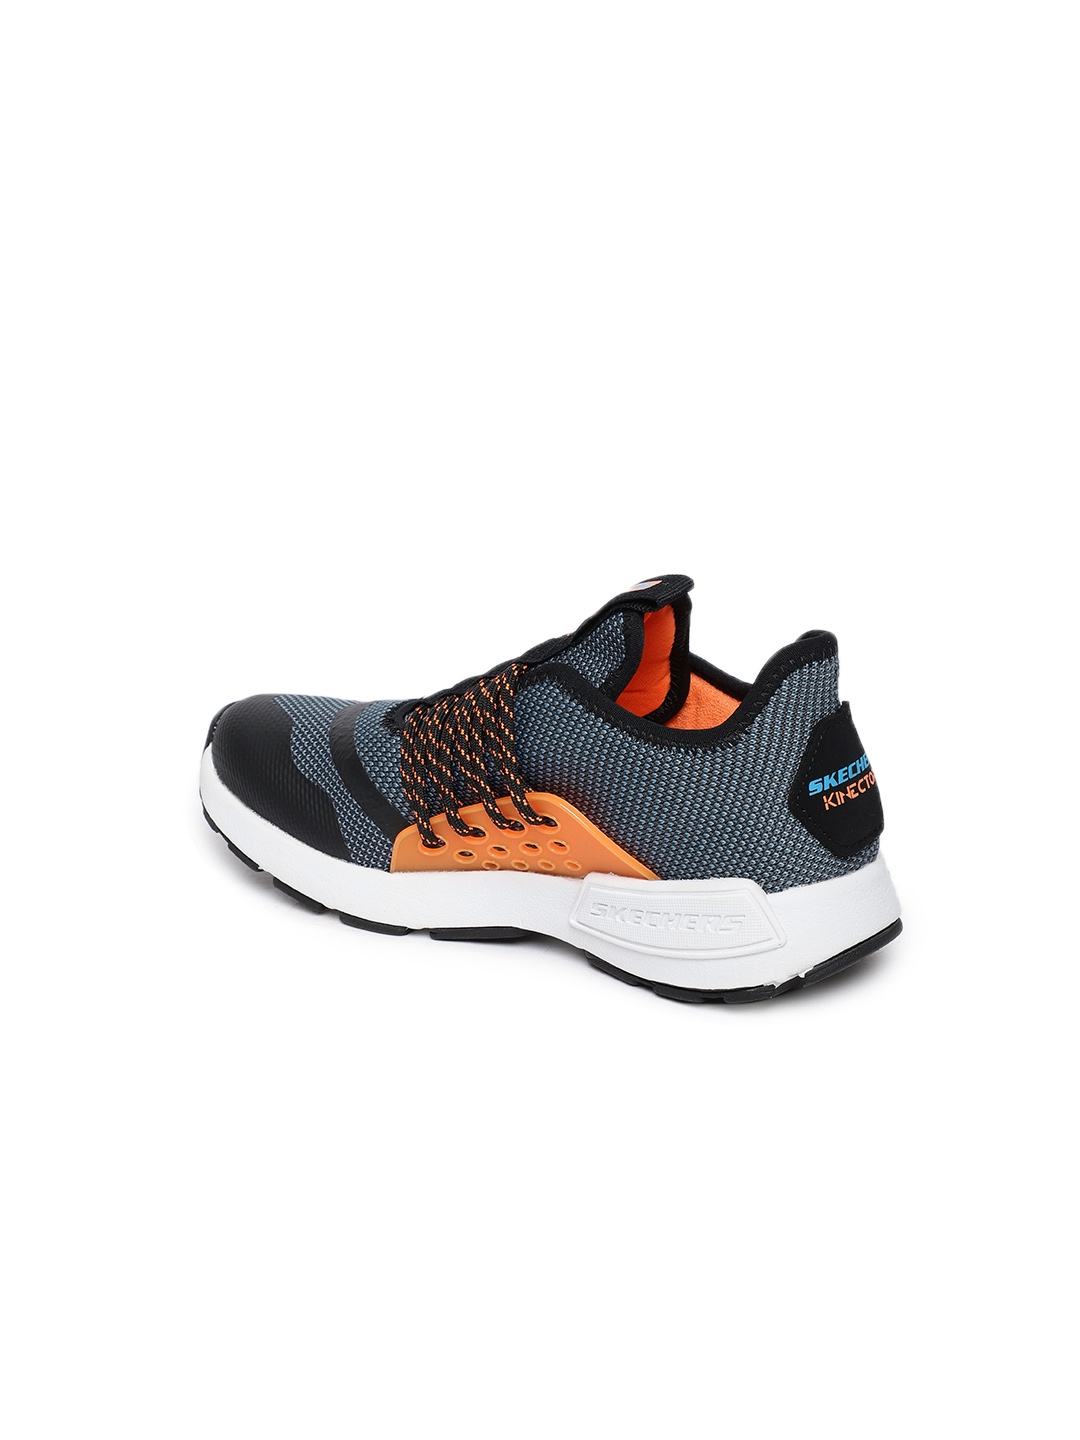 a43c9f32795 Buy Skechers Boys Grey KINECTORS Sneakers - Casual Shoes for Boys ...